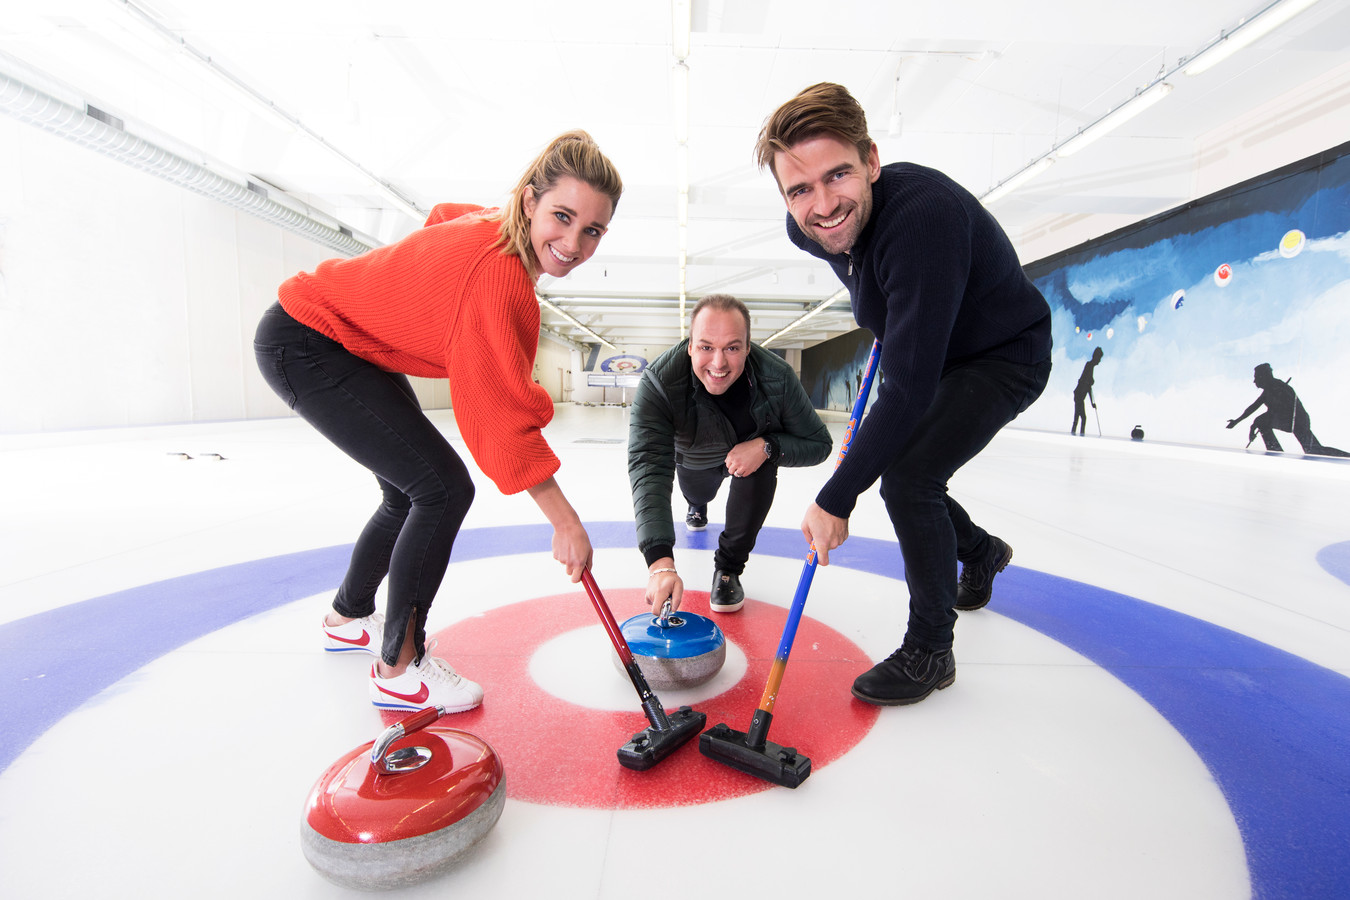 The Curling Quiz - Missers van televisie programma's